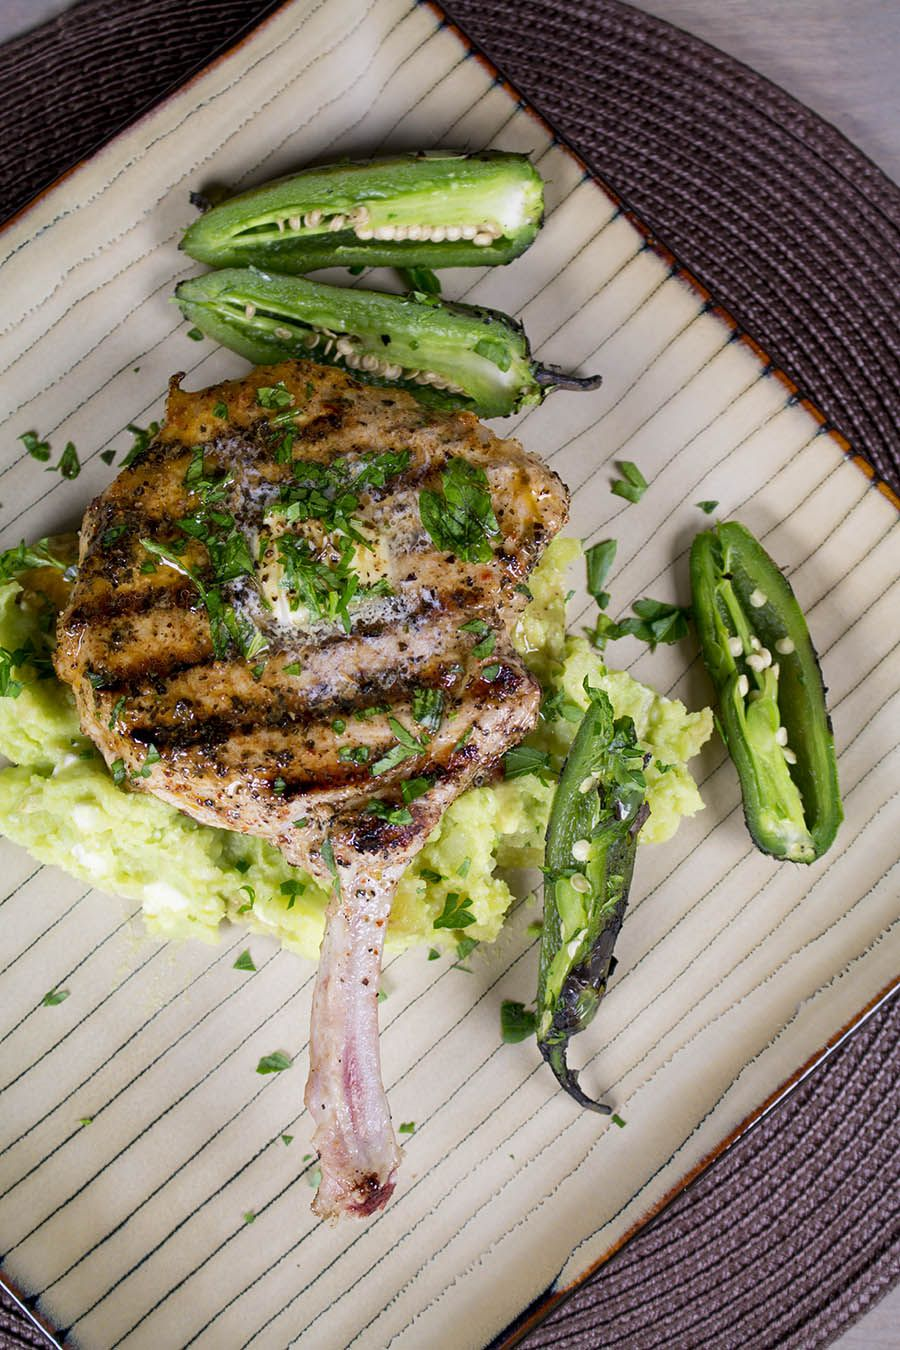 Grilled Pork Chops Over Avocado-Potato Smash with Roasted Jalapeno Peppers. #avocado #porkchop